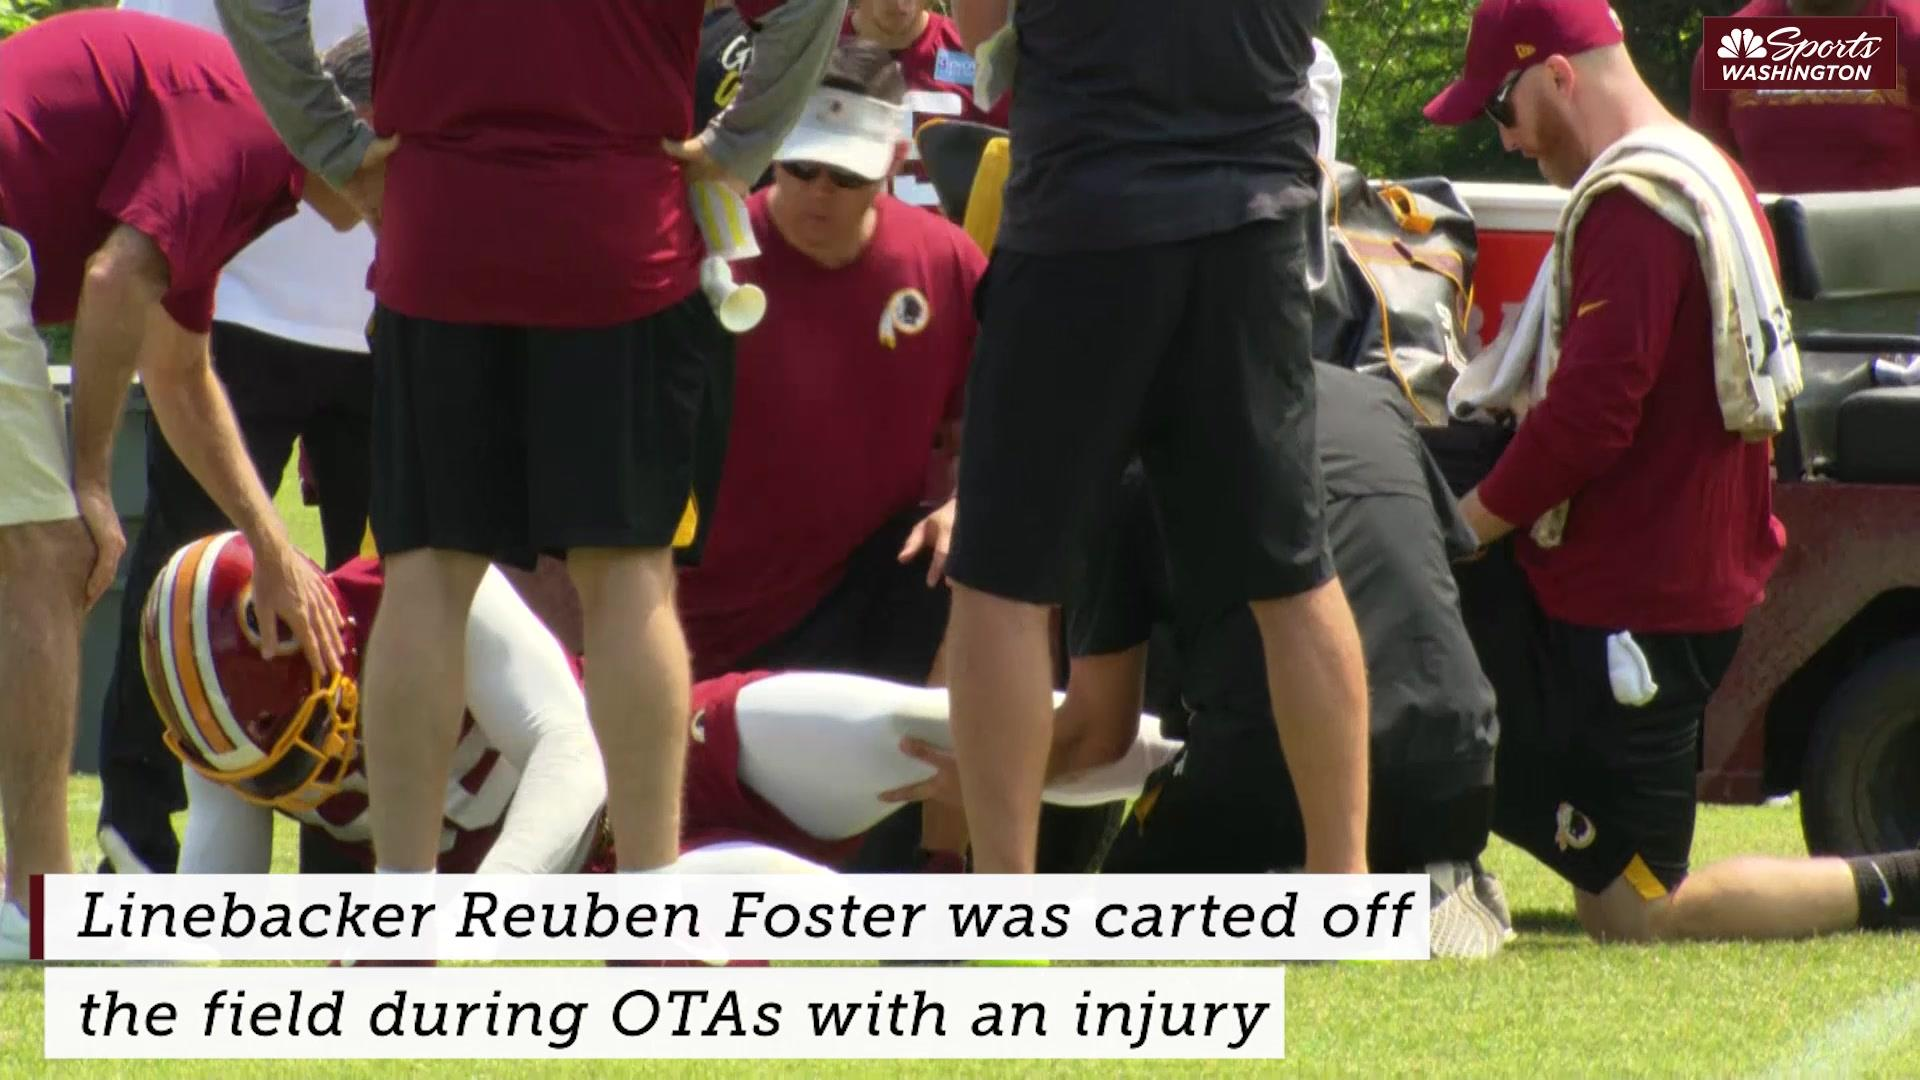 Redskins LB Reuben Foster injured, carted off field at OTAs